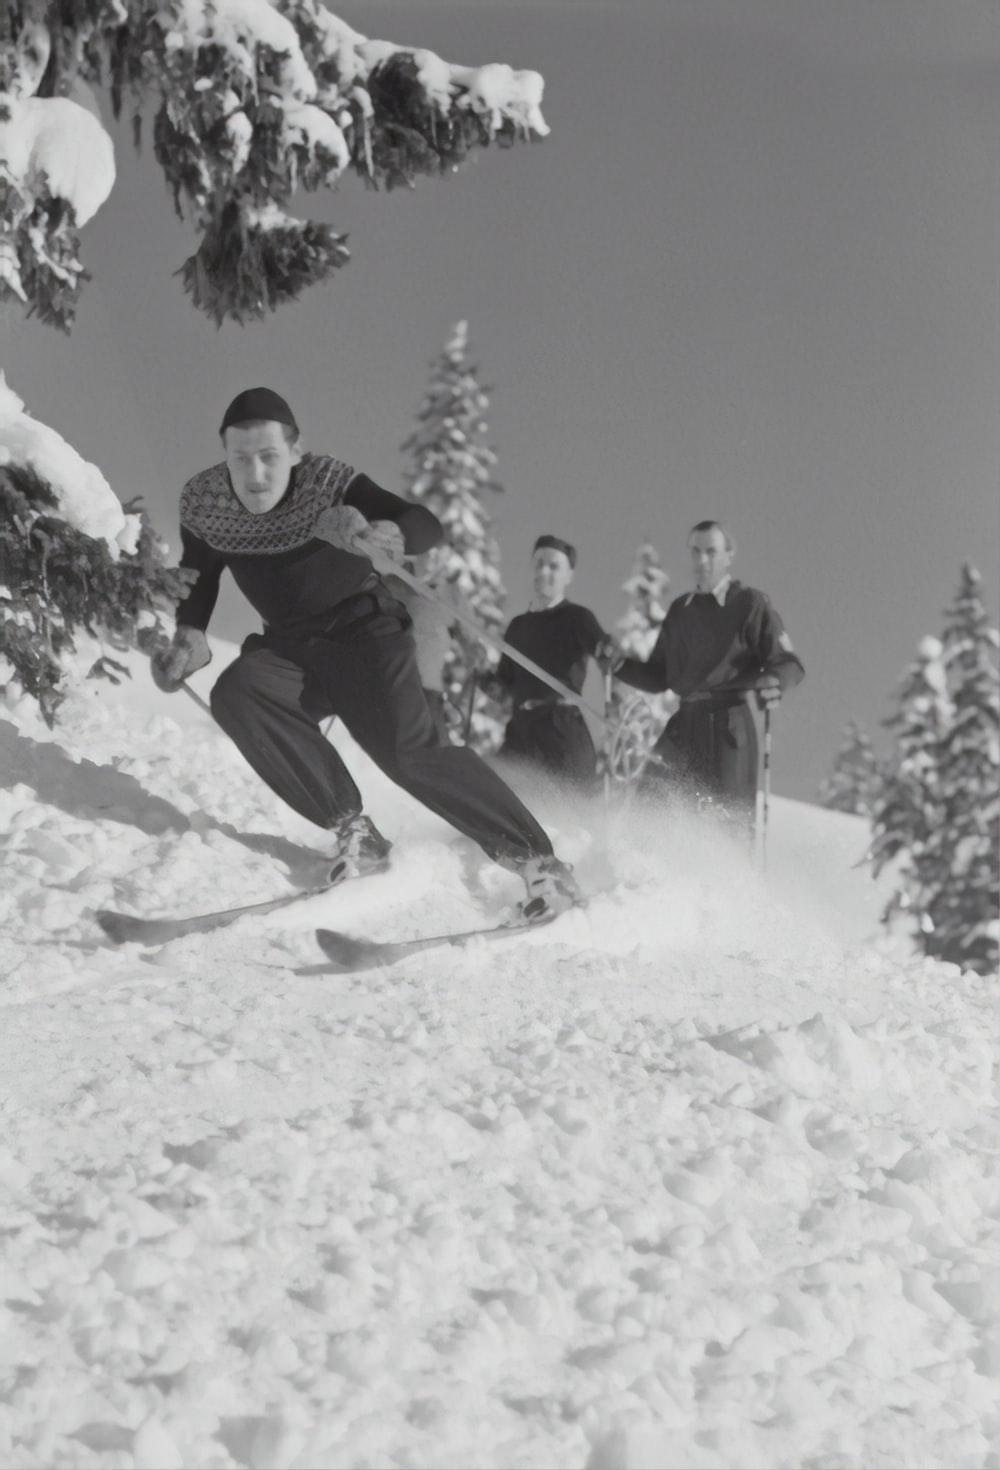 grayscale photography of people doing nordic skiing